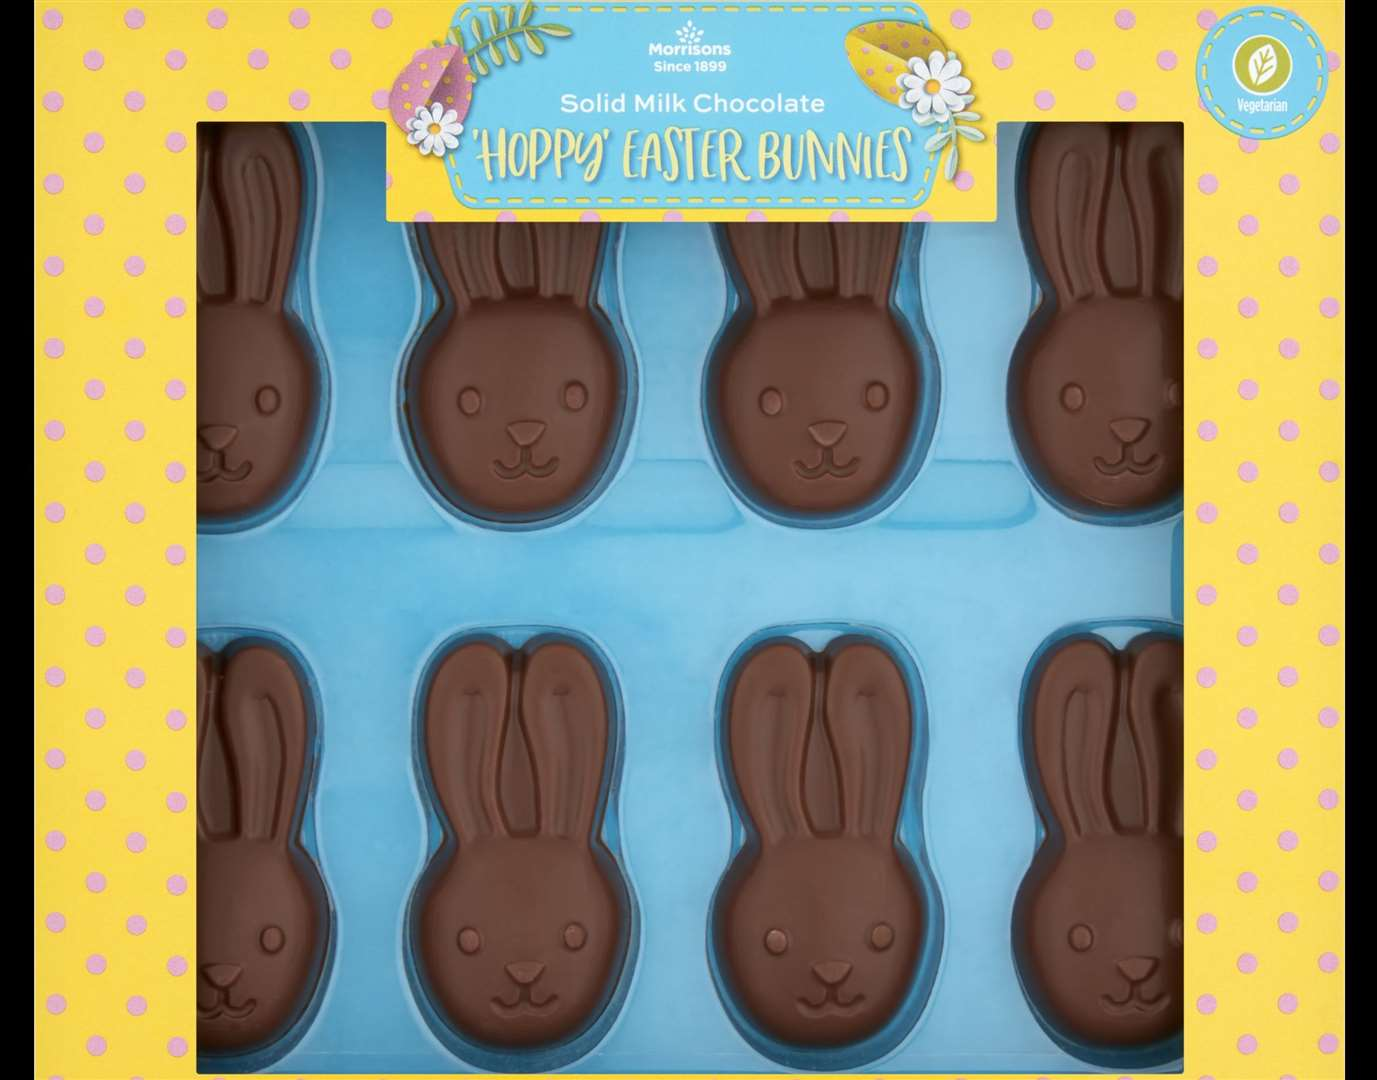 Morrisons Hoppy Easter bunnies